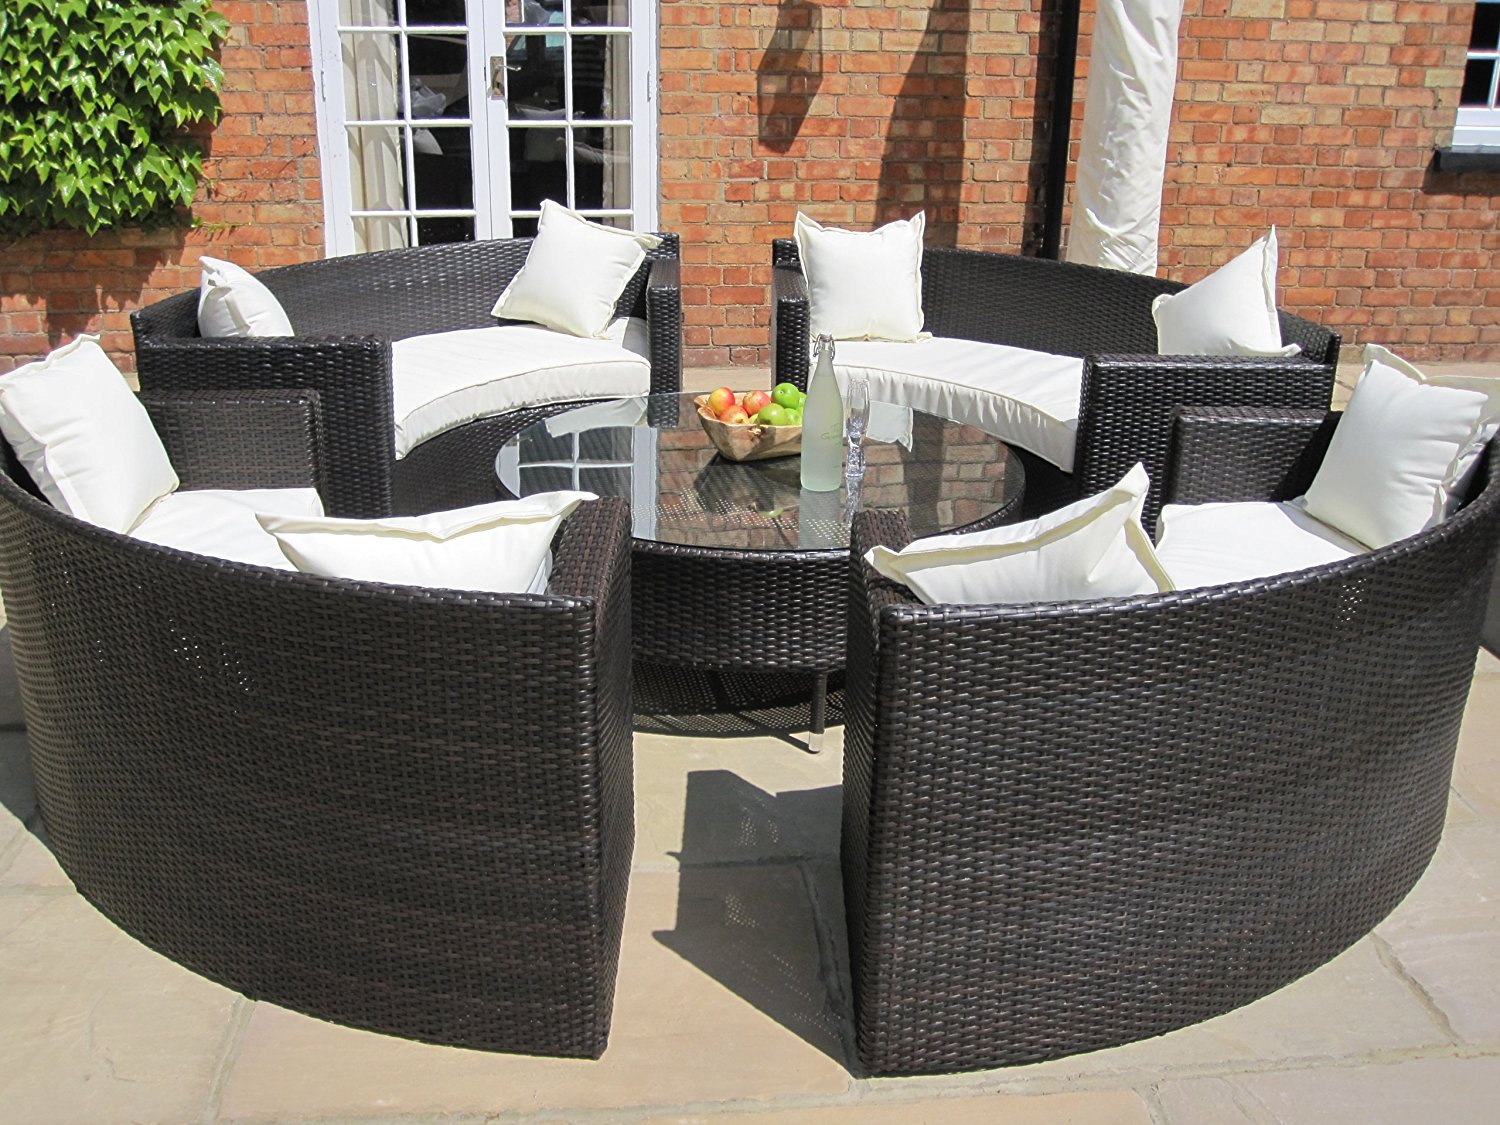 Rattan Circular Patio Furniture